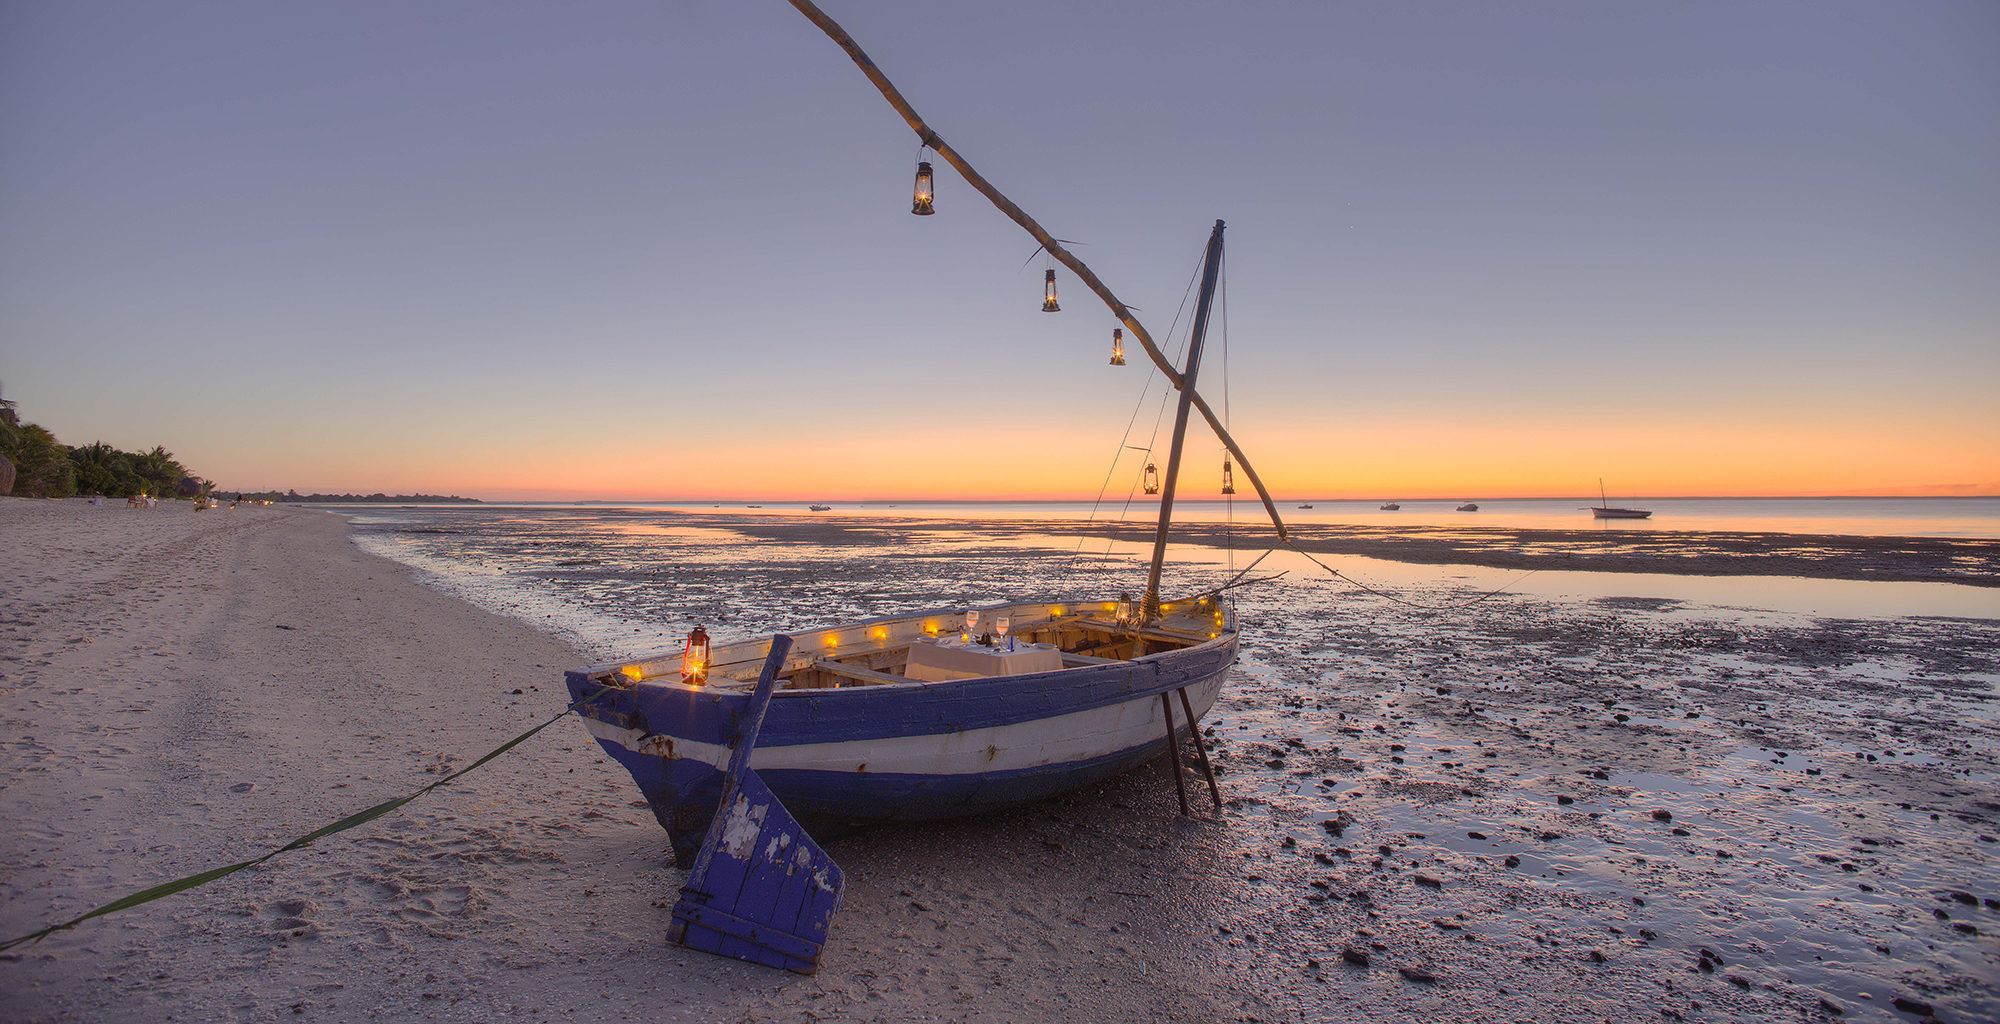 Mozambique-Bazaruto-Archipelago-Sunset-Beach